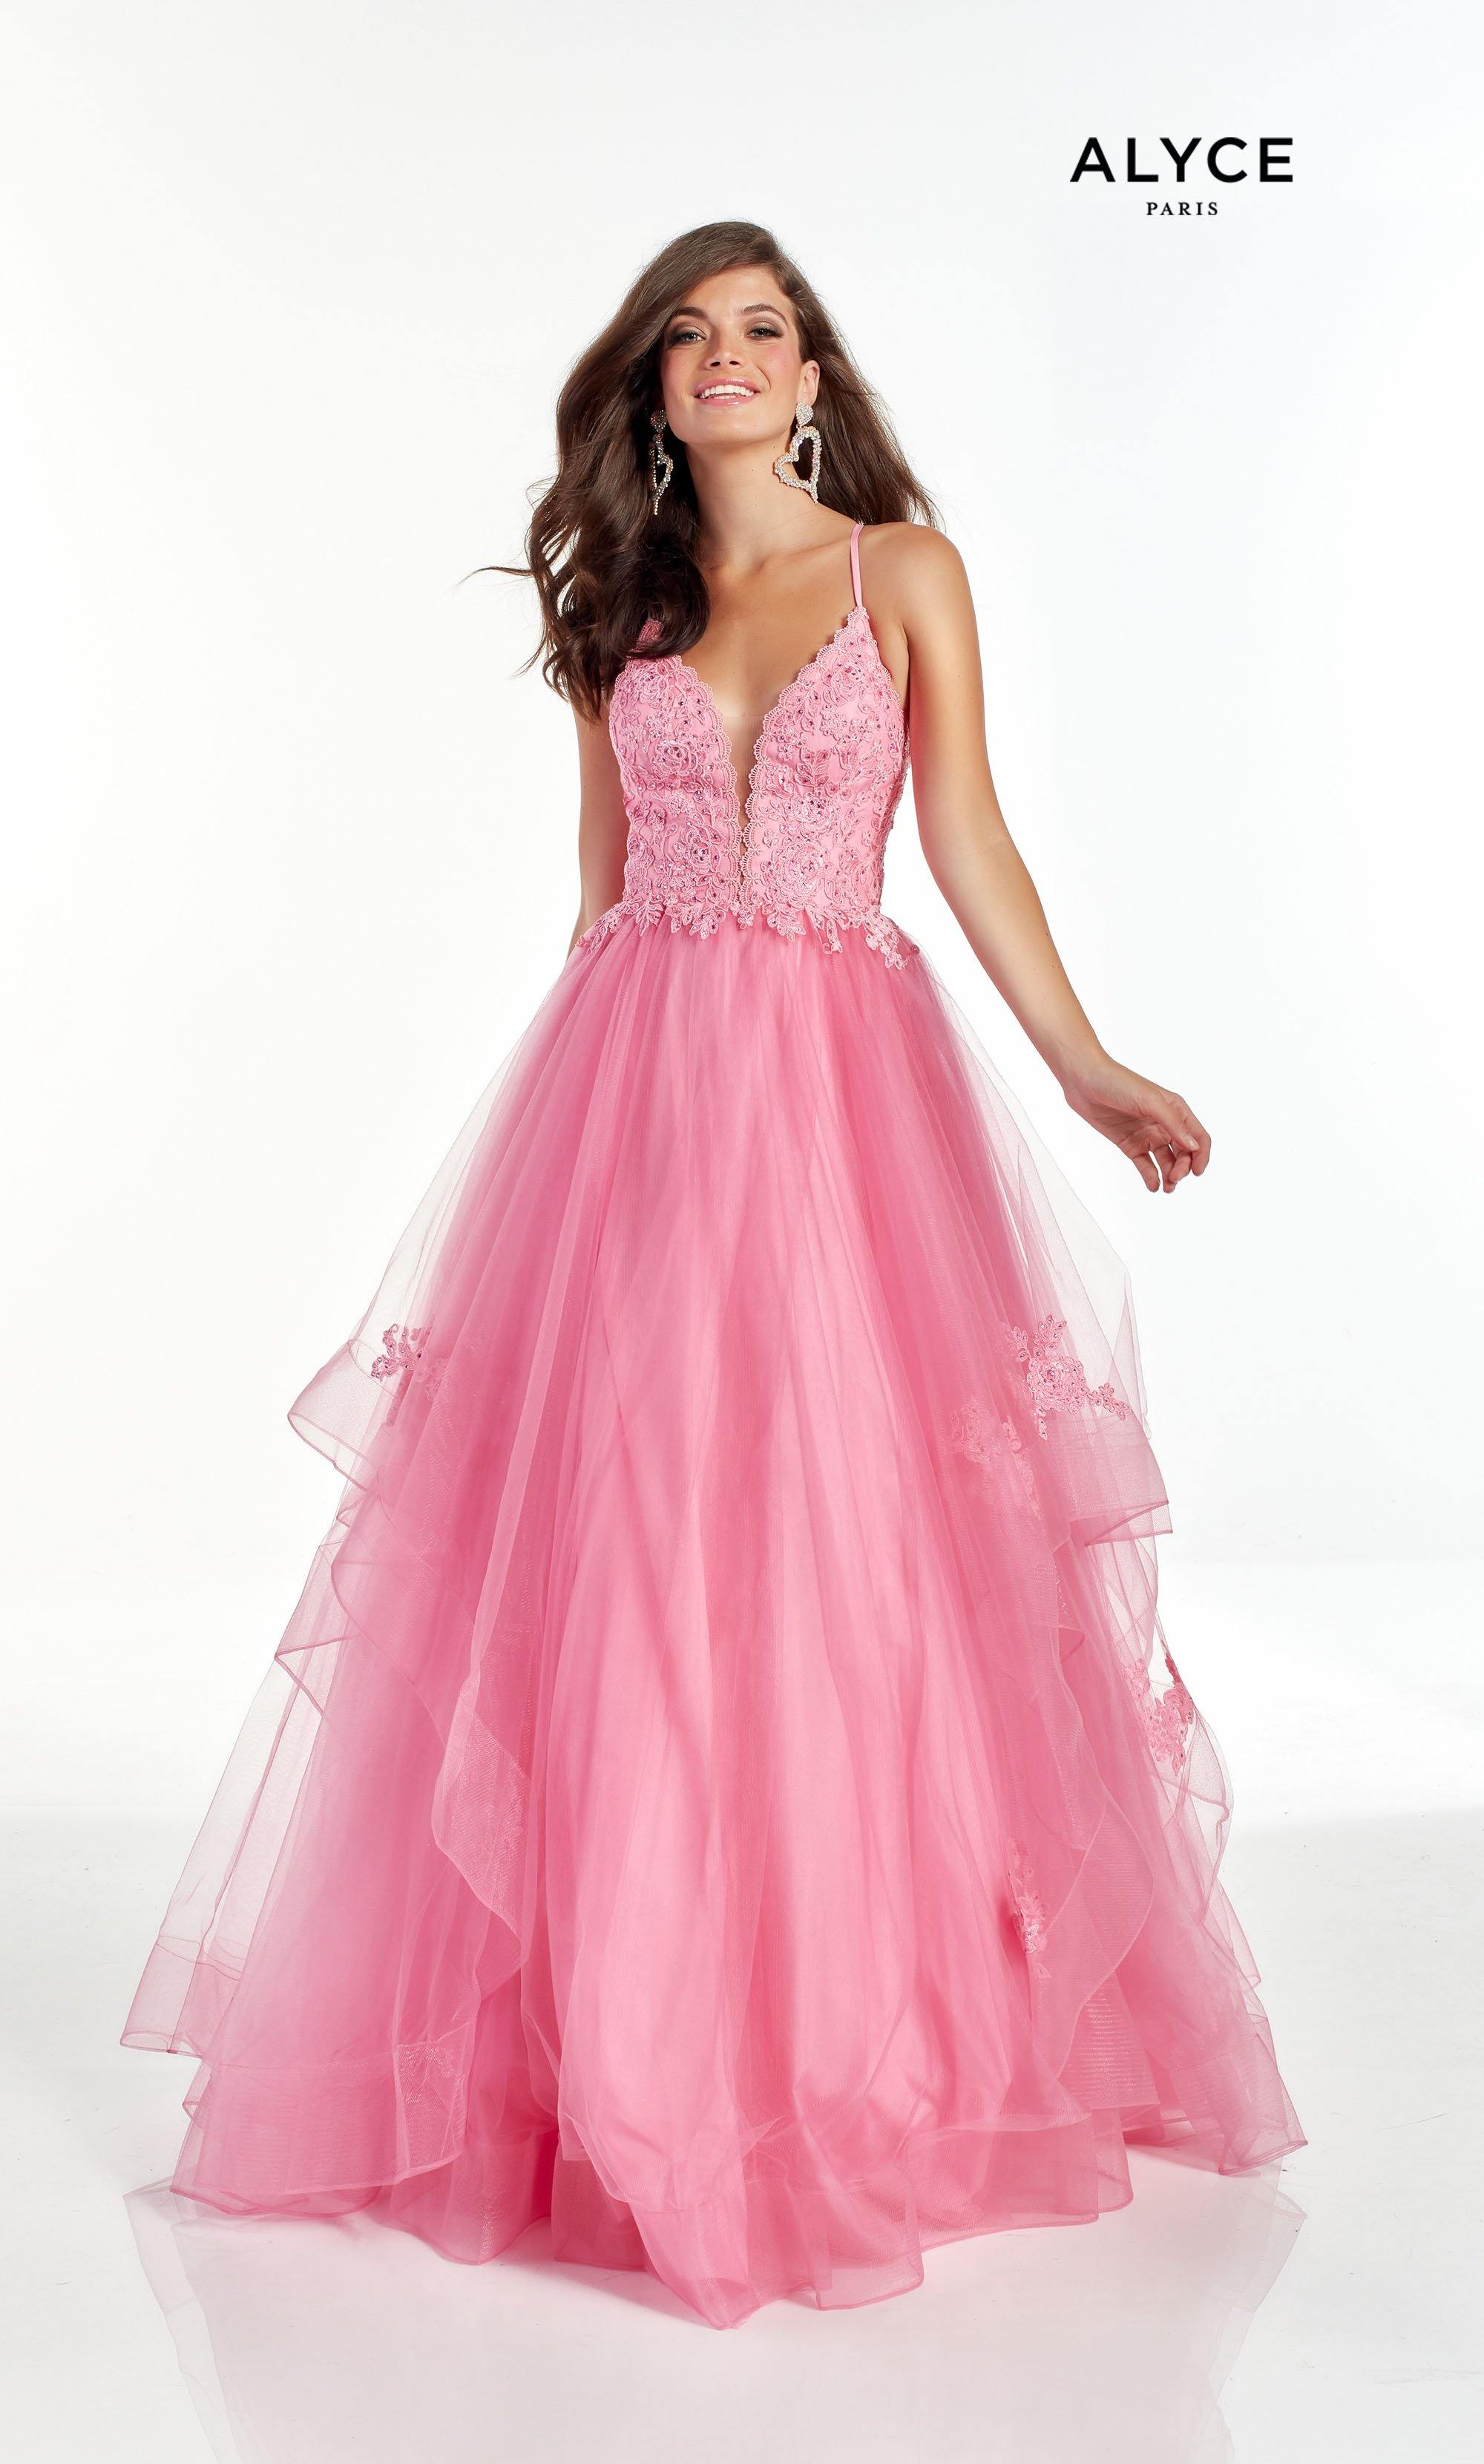 Bright Pink layered ballgown with an embellished lace detail and a plunging neckline